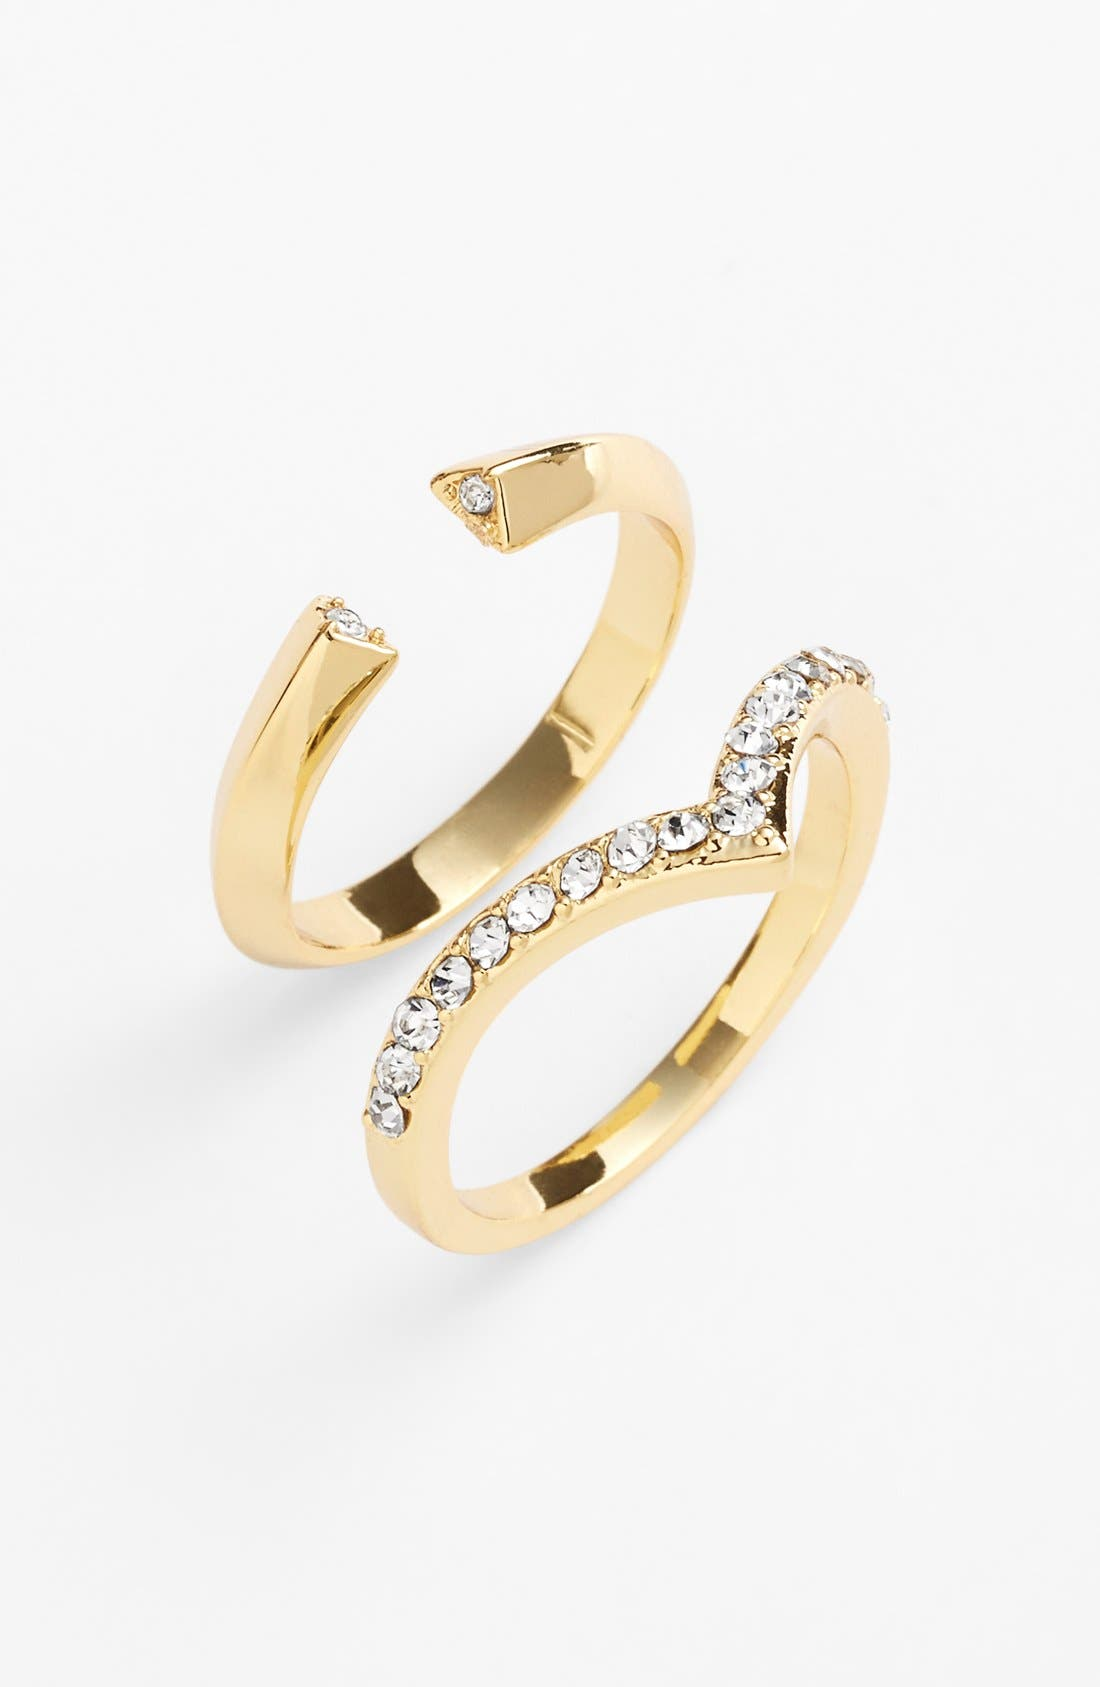 Main Image - Ariella Collection Chevron & Open Rings (Set of 2)